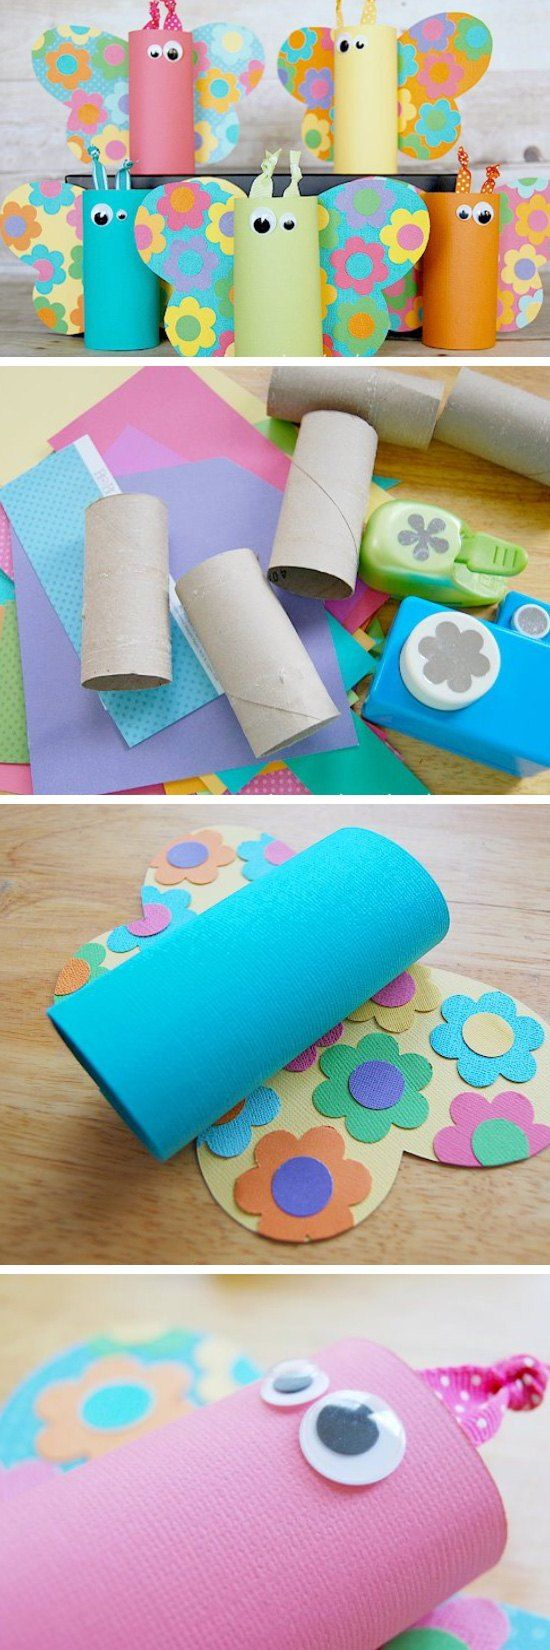 These cheerful butterflies made from toilet paper rolls are a lovely spring craft for preschoolers and younger kids!